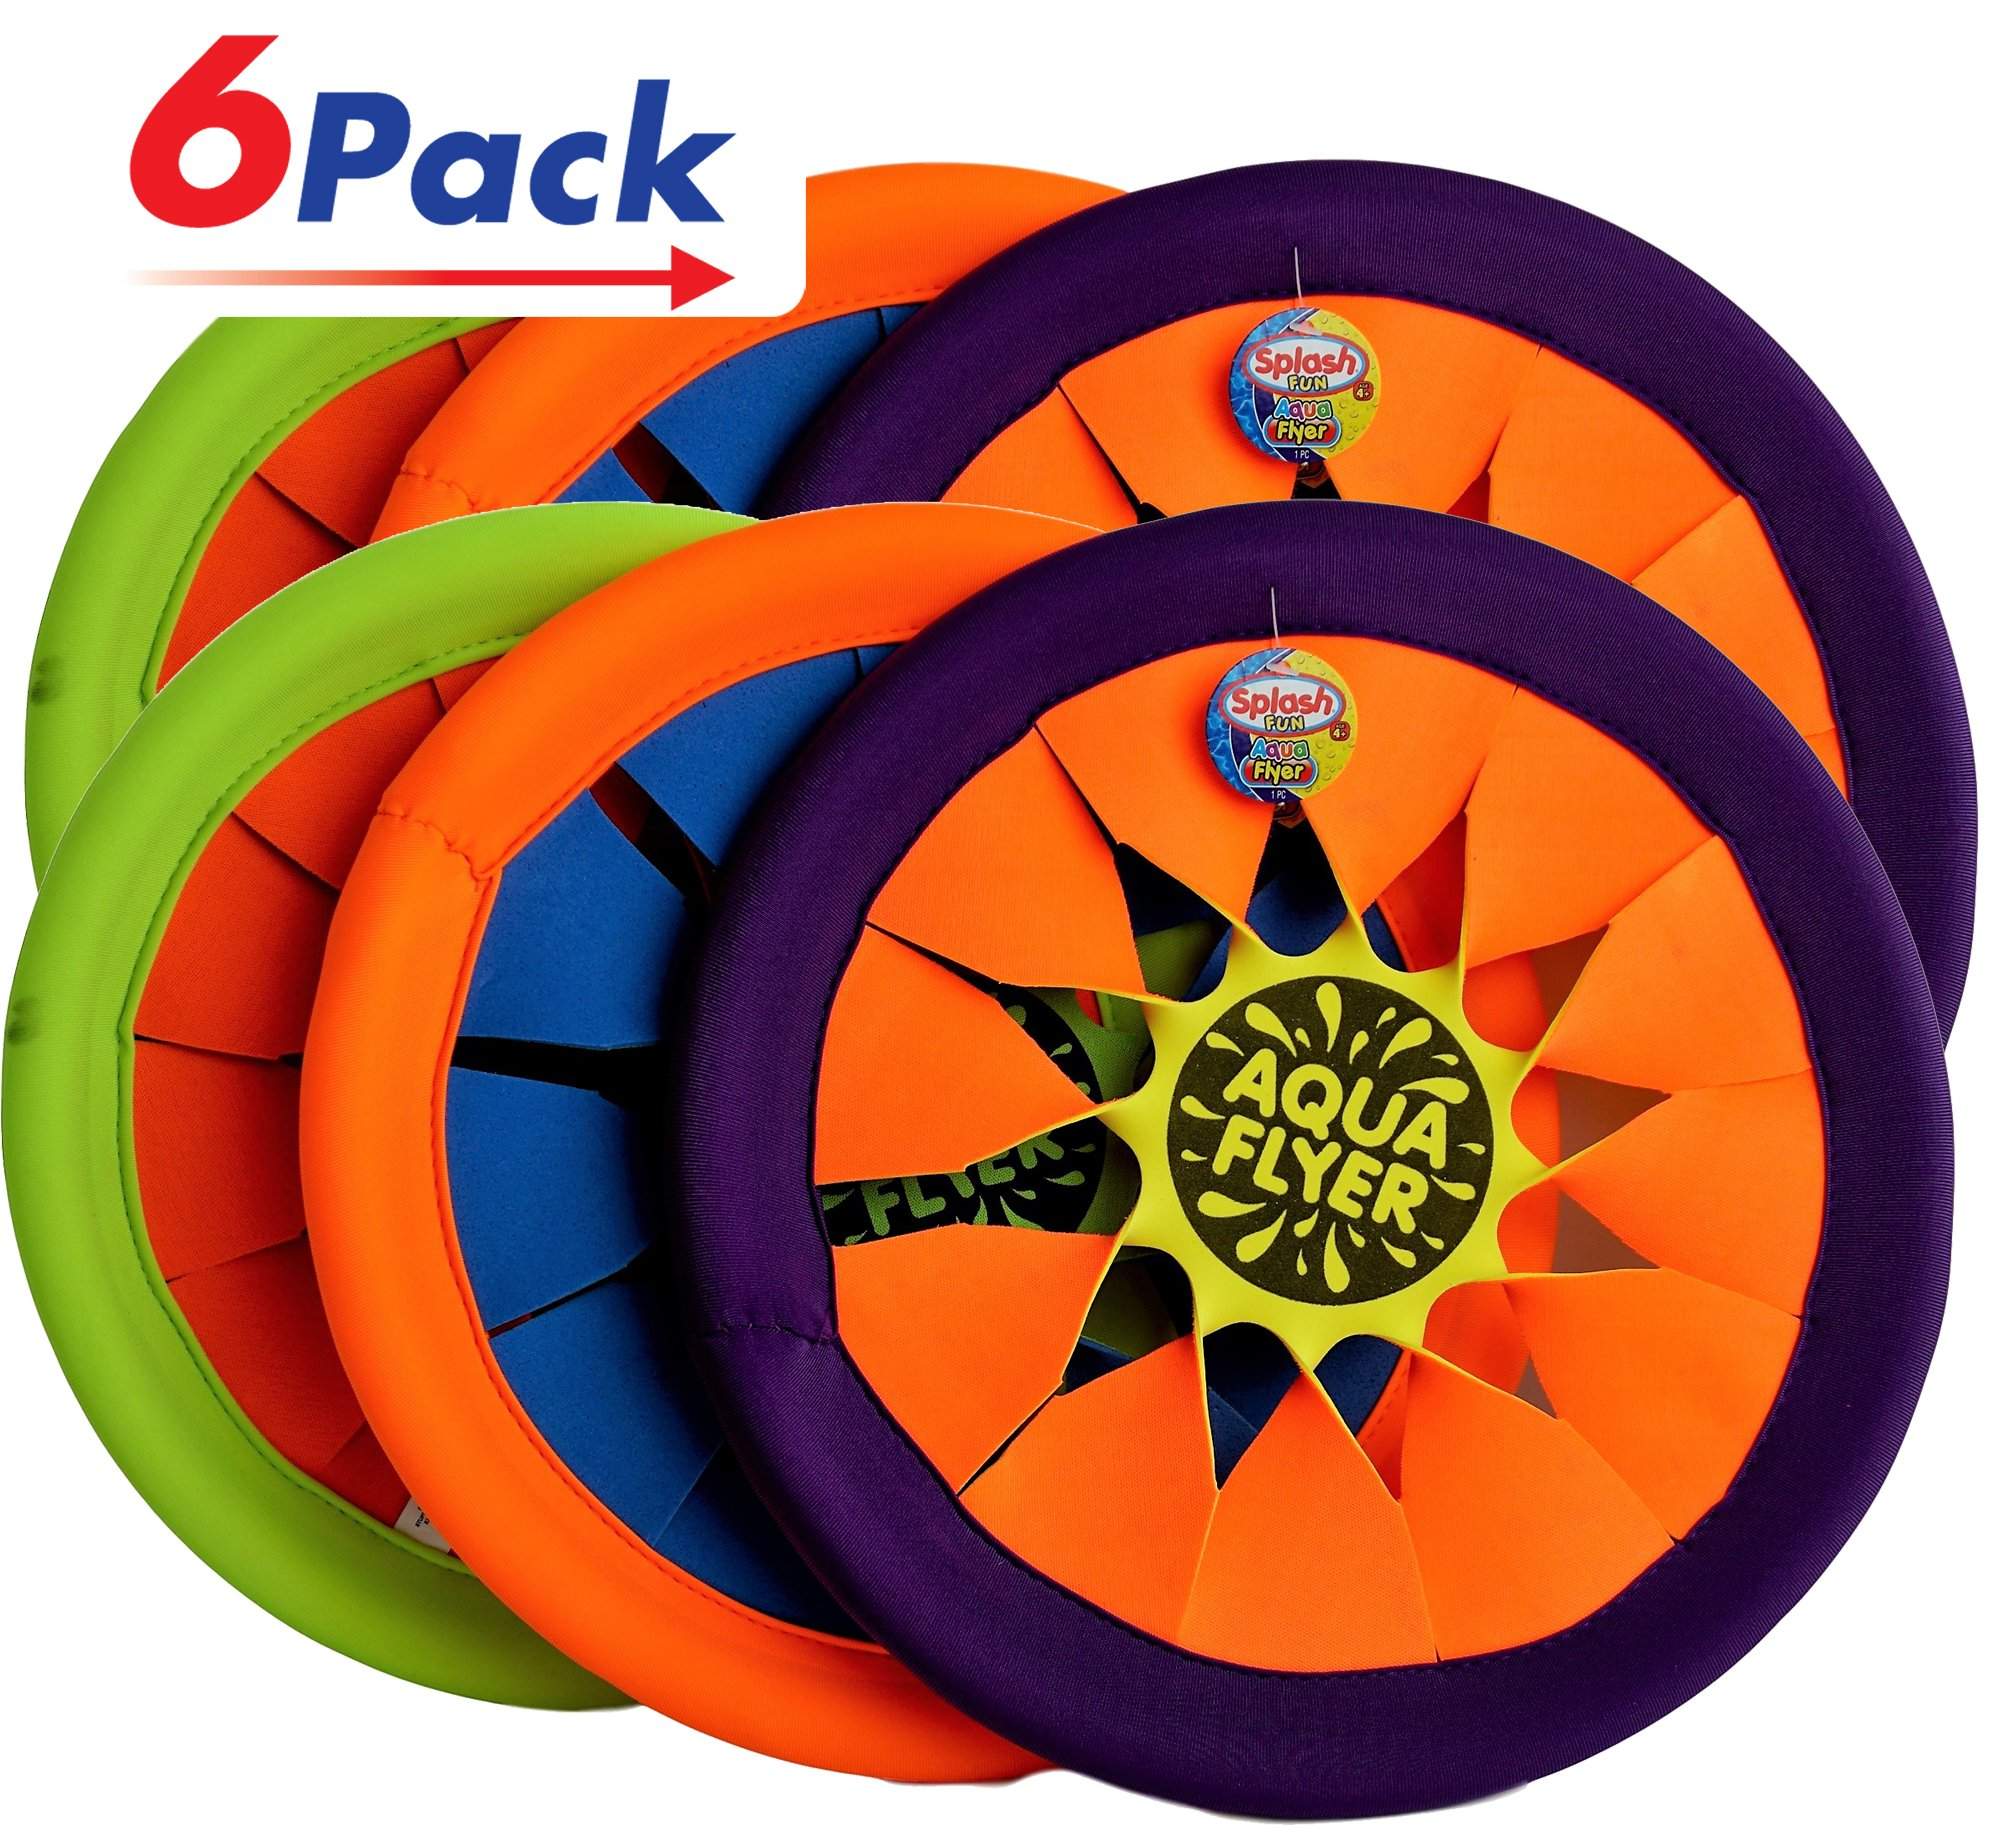 Water Frisbee by JA-RU | Beach Toys Swimming Pool Soft Flying Disc Hours of Beach Fun in the Sun Pack of 6 | Item #1031 by JaRu